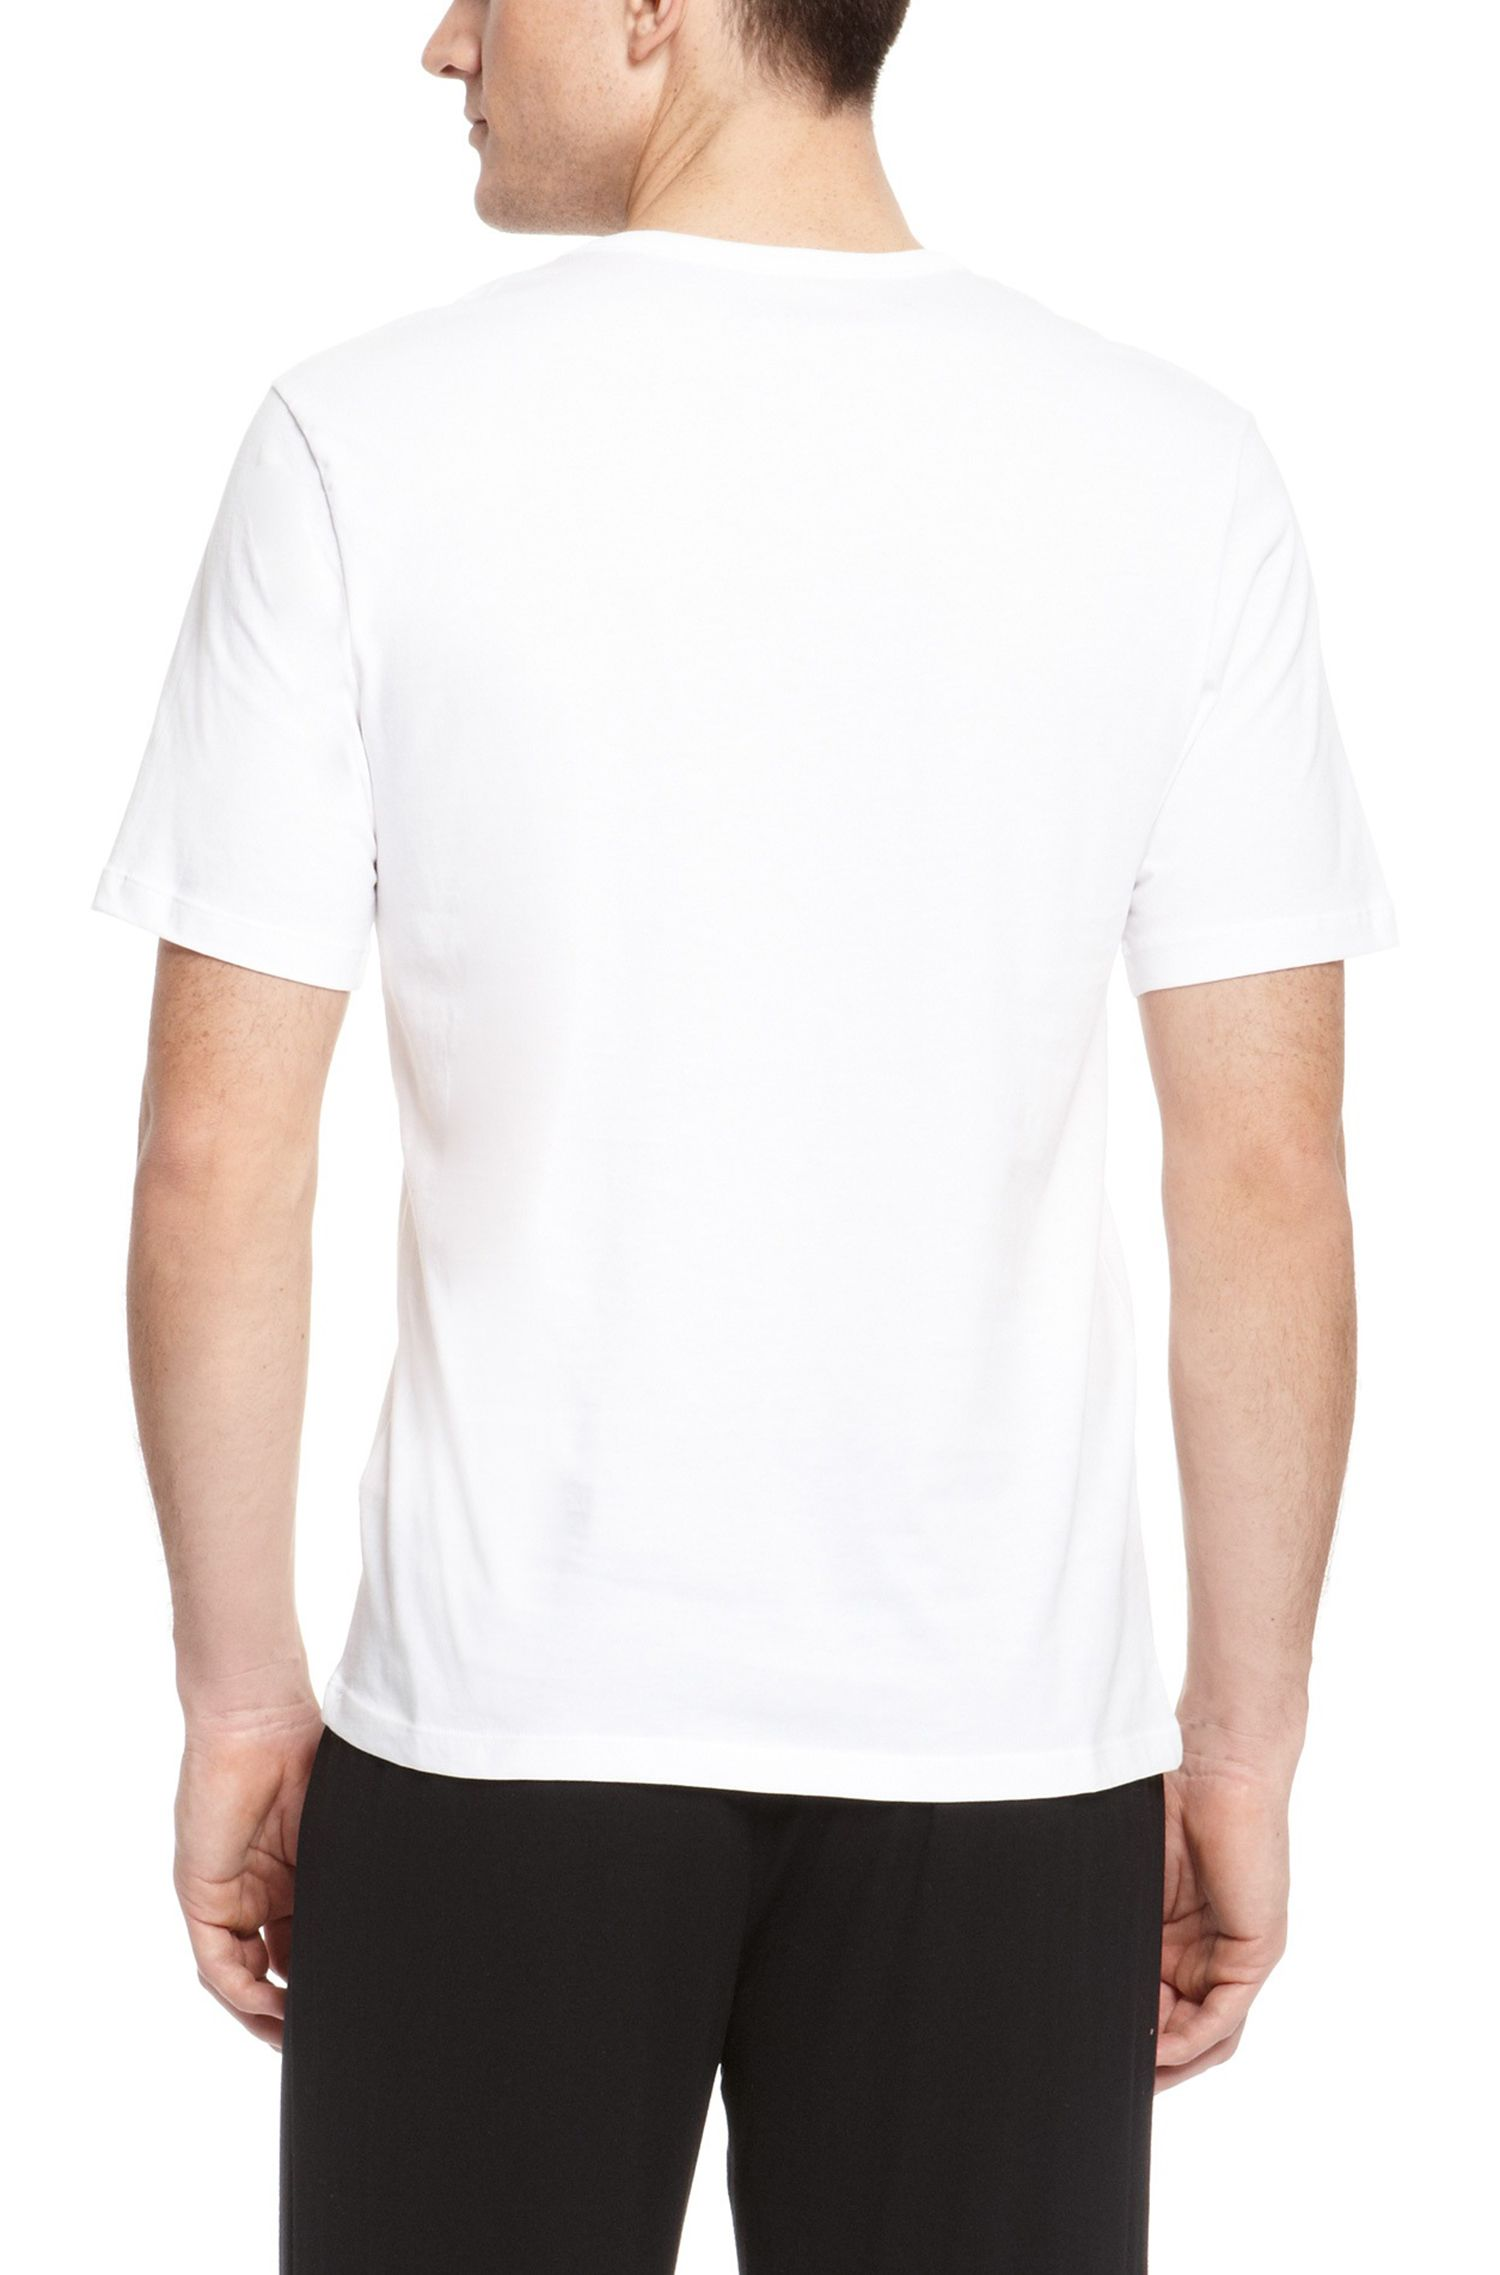 'Shirt' | Cotton Crewneck Undershirt, 3-Pack